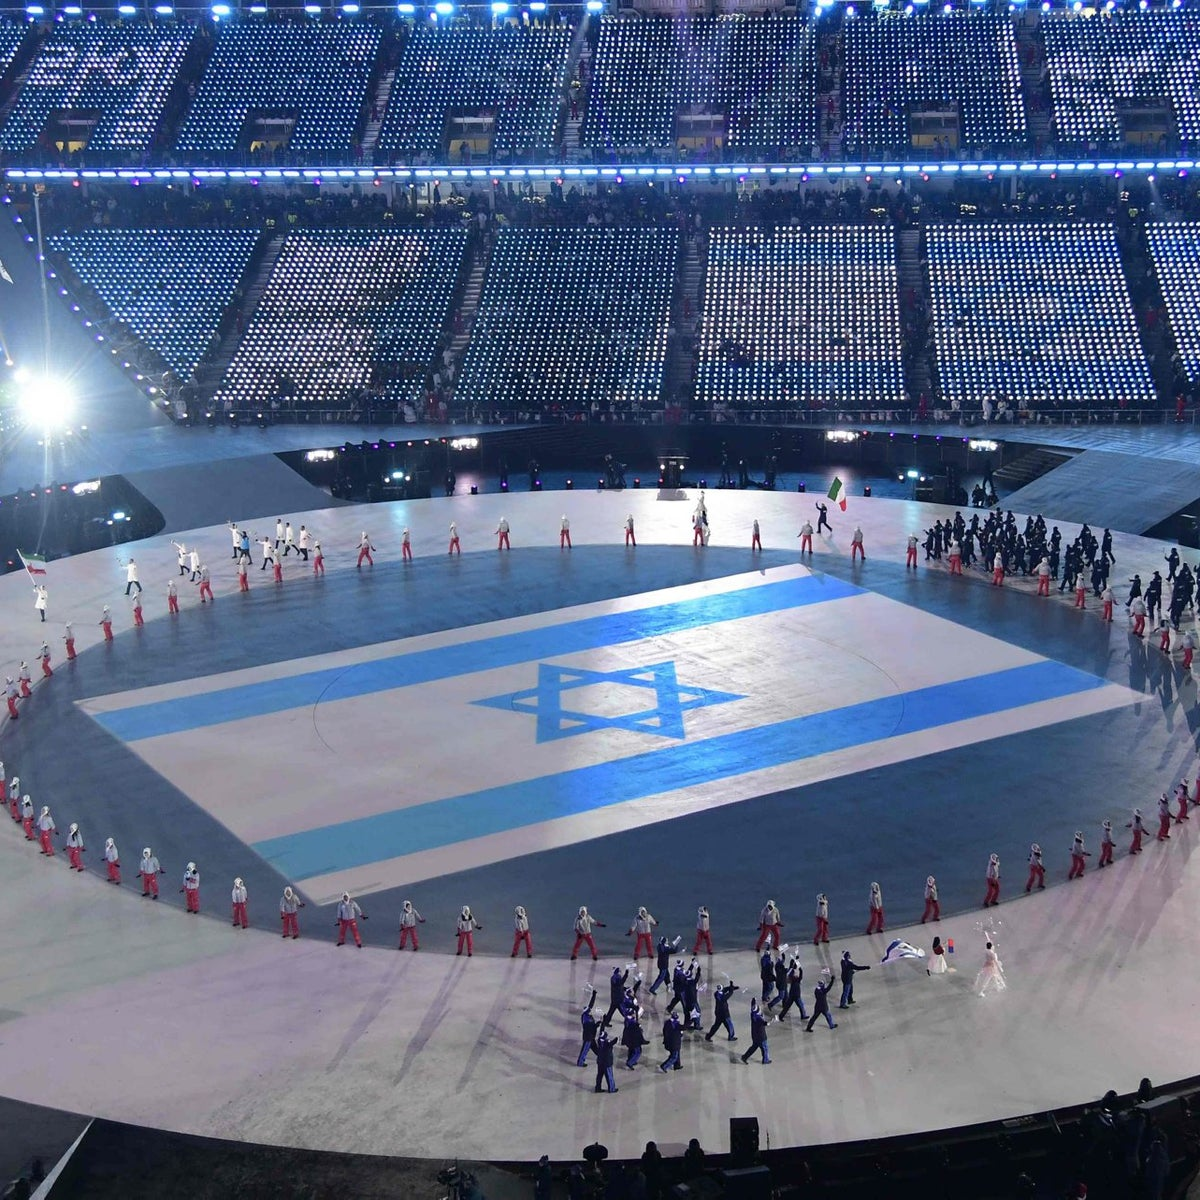 The Israelian delegation parades during the opening ceremony of the Pyeongchang 2018 Winter Olympic Games at the Pyeongchang Stadium on February 9, 2018.